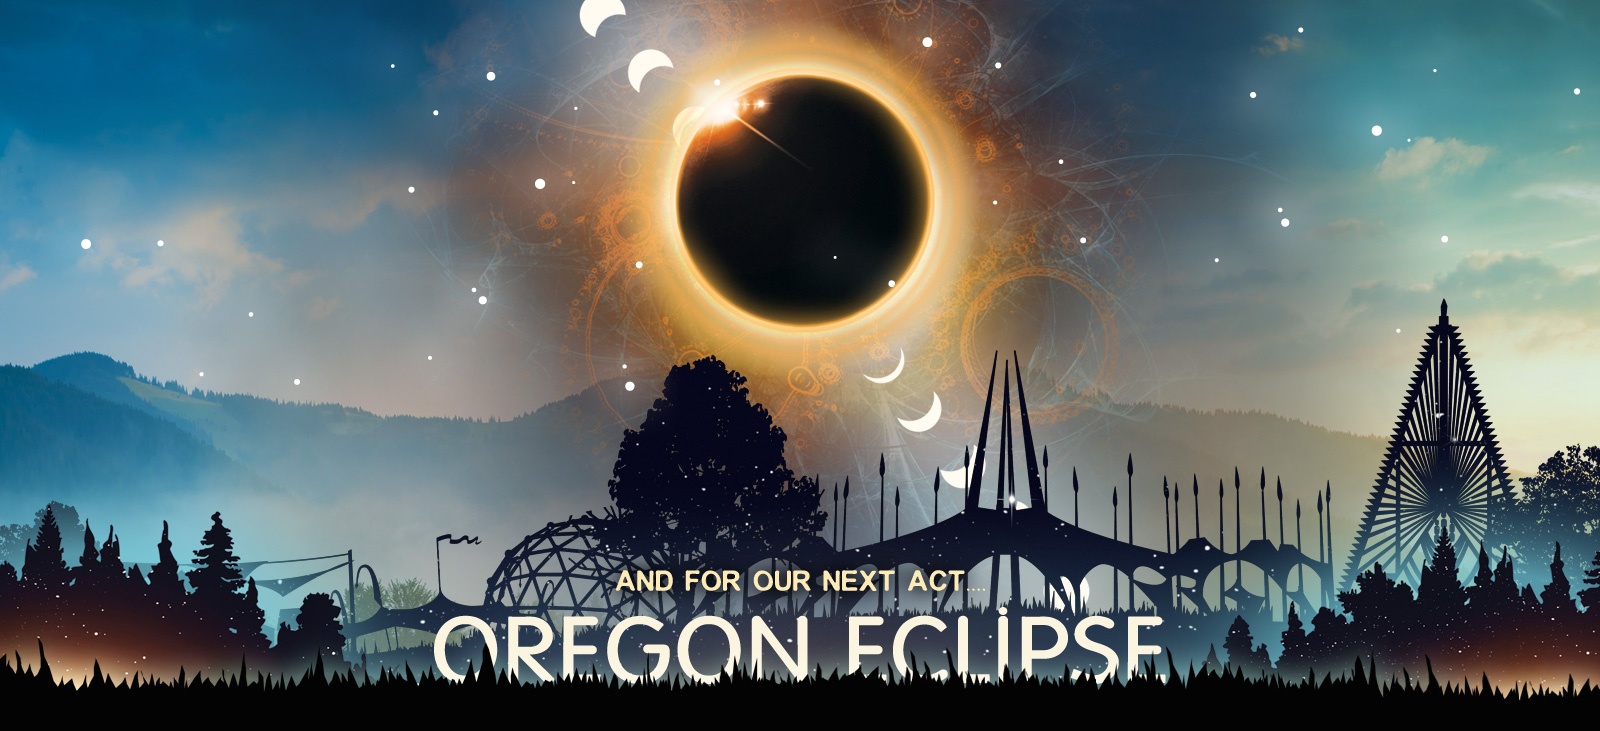 7 Ways Oregon Eclipse Will Be Different From Any Other Festival